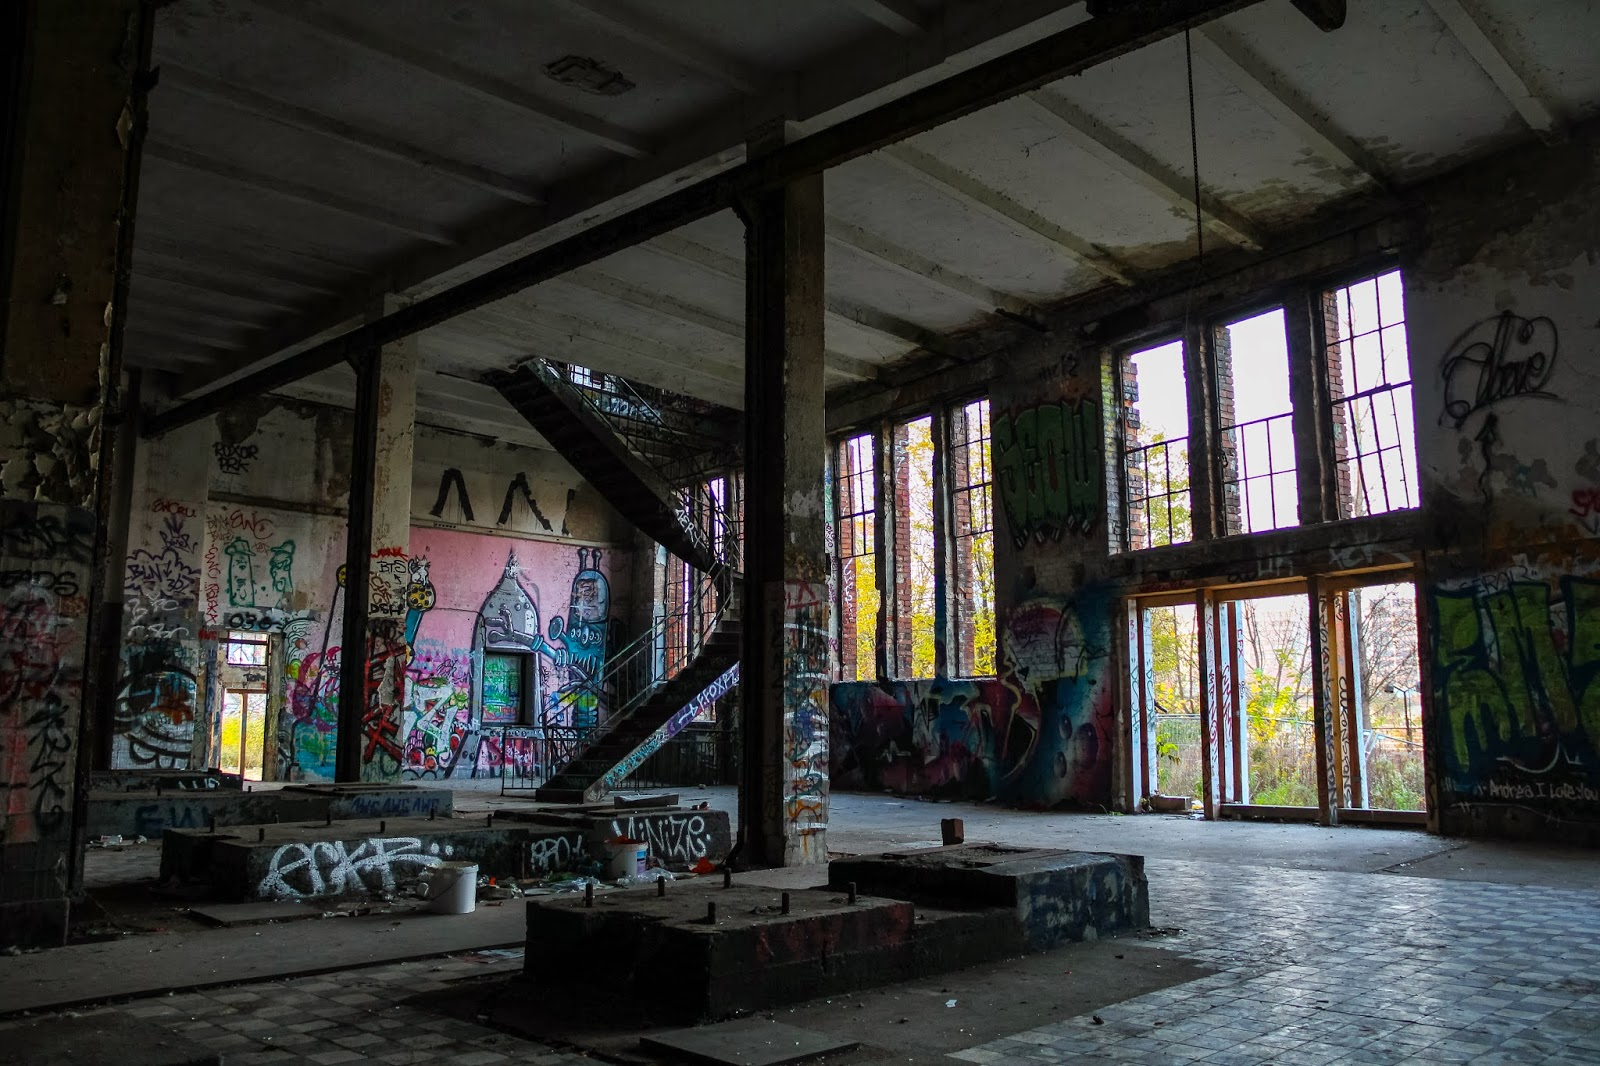 eisfabrik-abandoned-ice-factory-berlin-0980